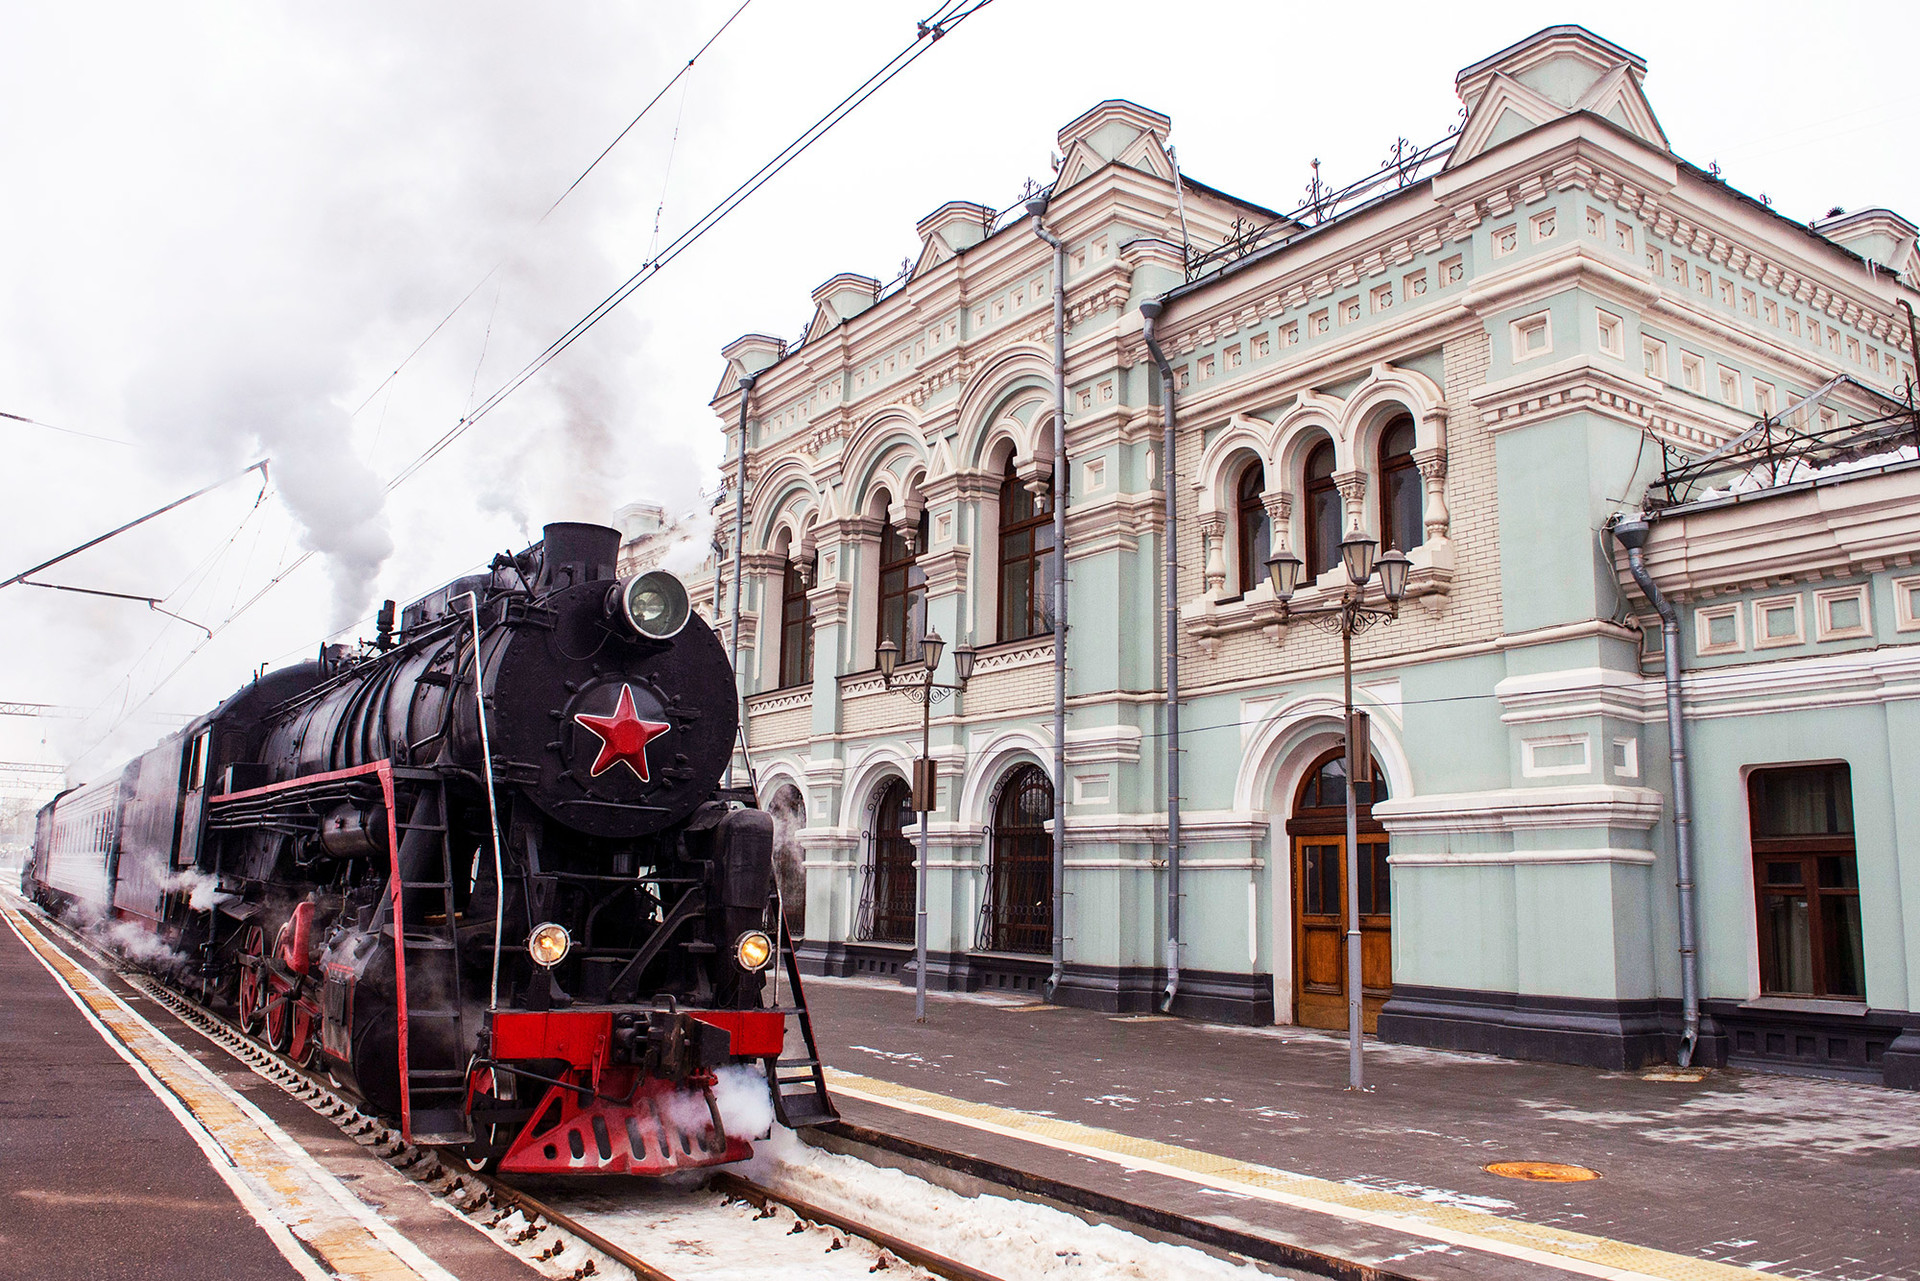 An antique train of the Russian Railways arrives at the Rizhsky railway station.